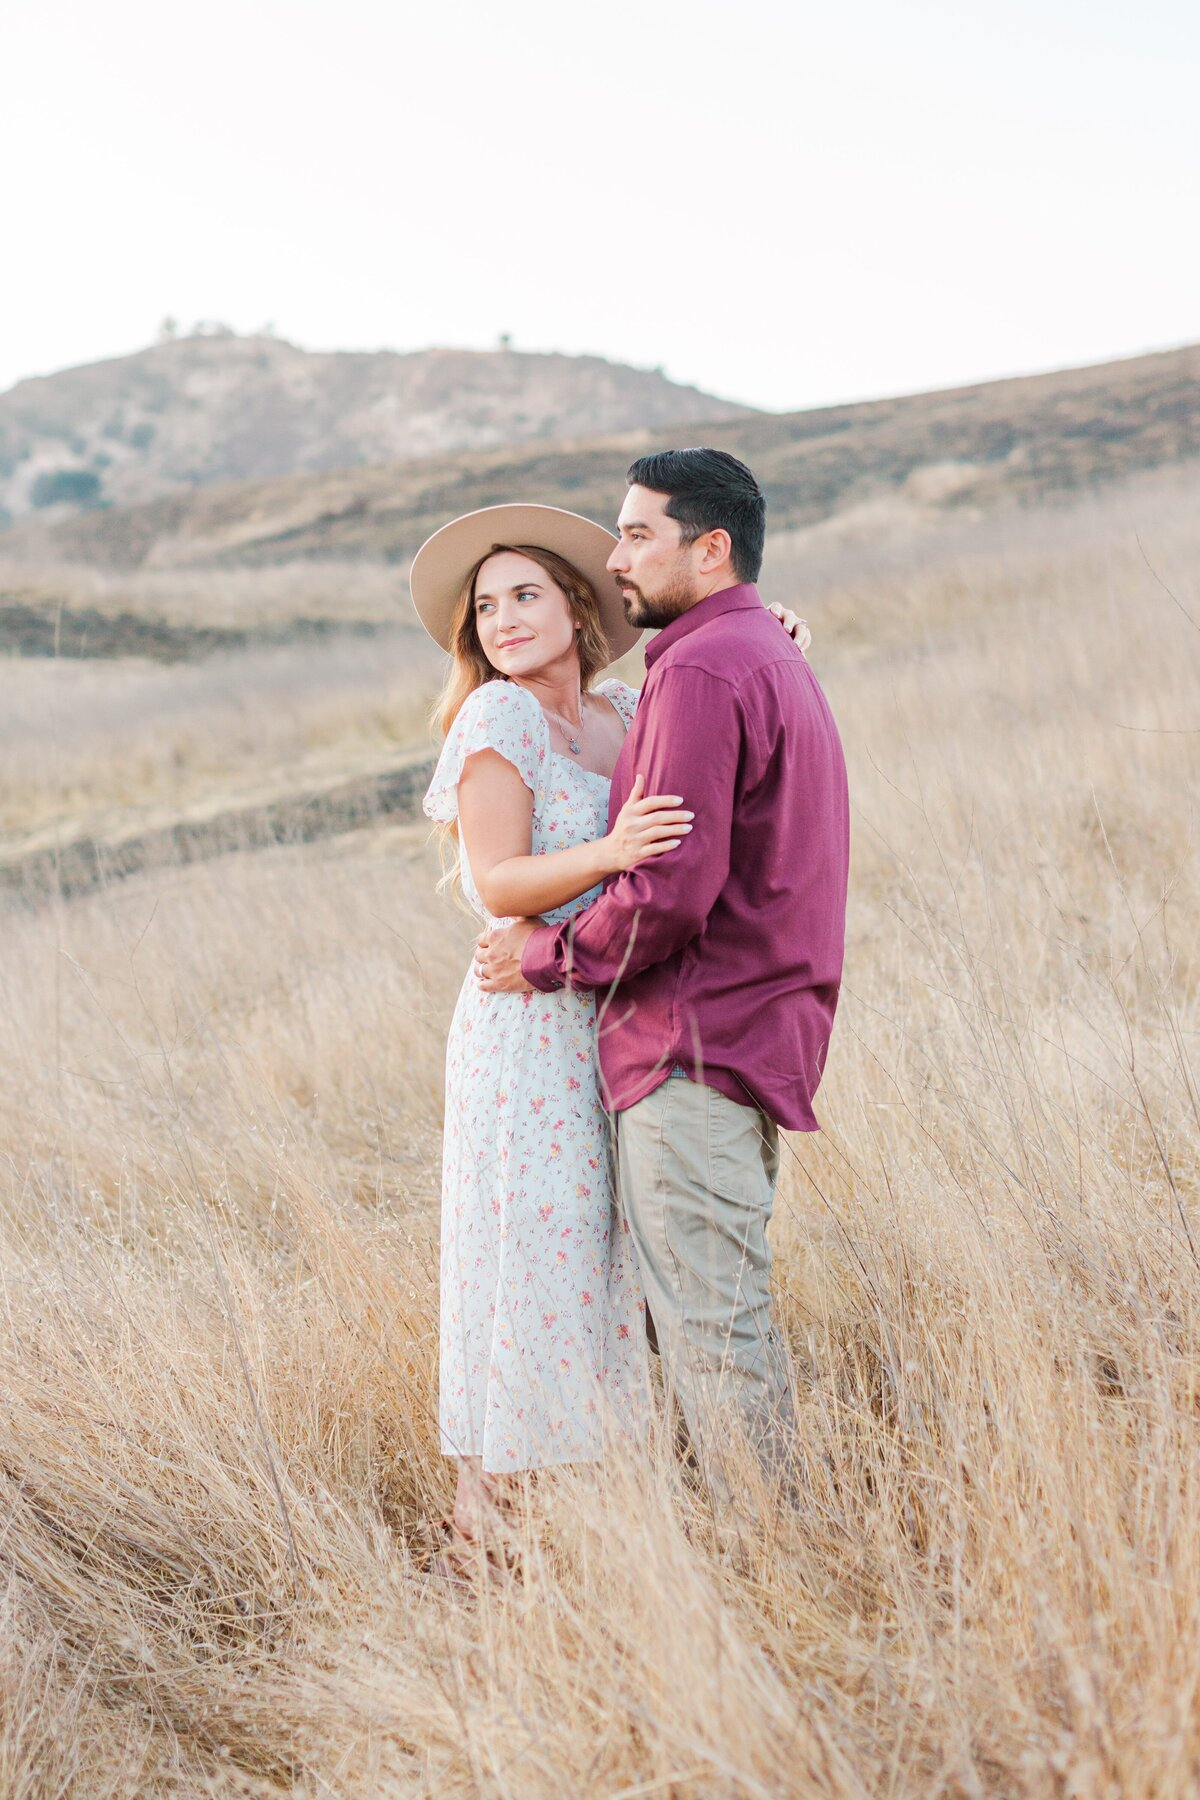 blog-Malibu-State-Creek-Park-Engagament-Shoot-boho-0071